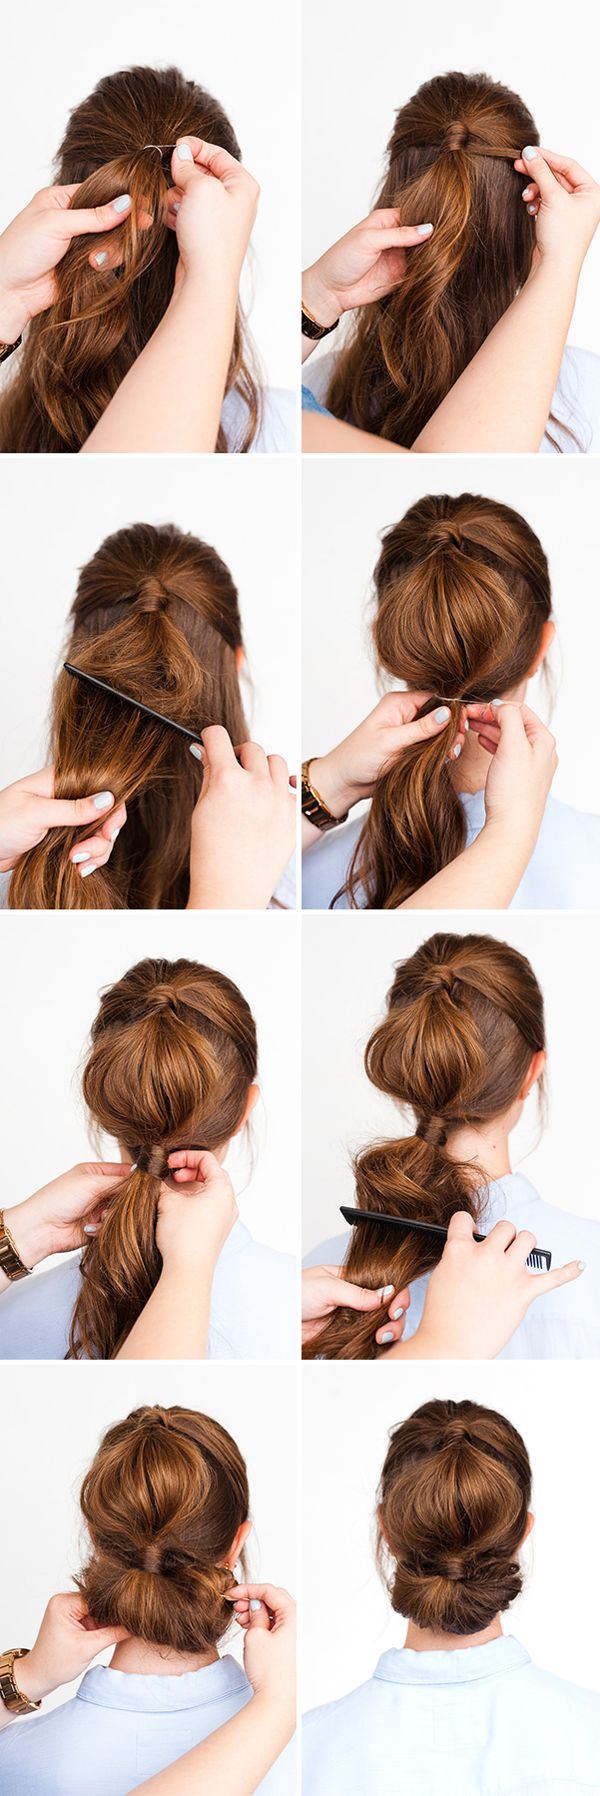 Simple Holiday Hair Two Ways In 10 Minutes Holiday Hairstyles Long Hair Styles Diy Hairstyles